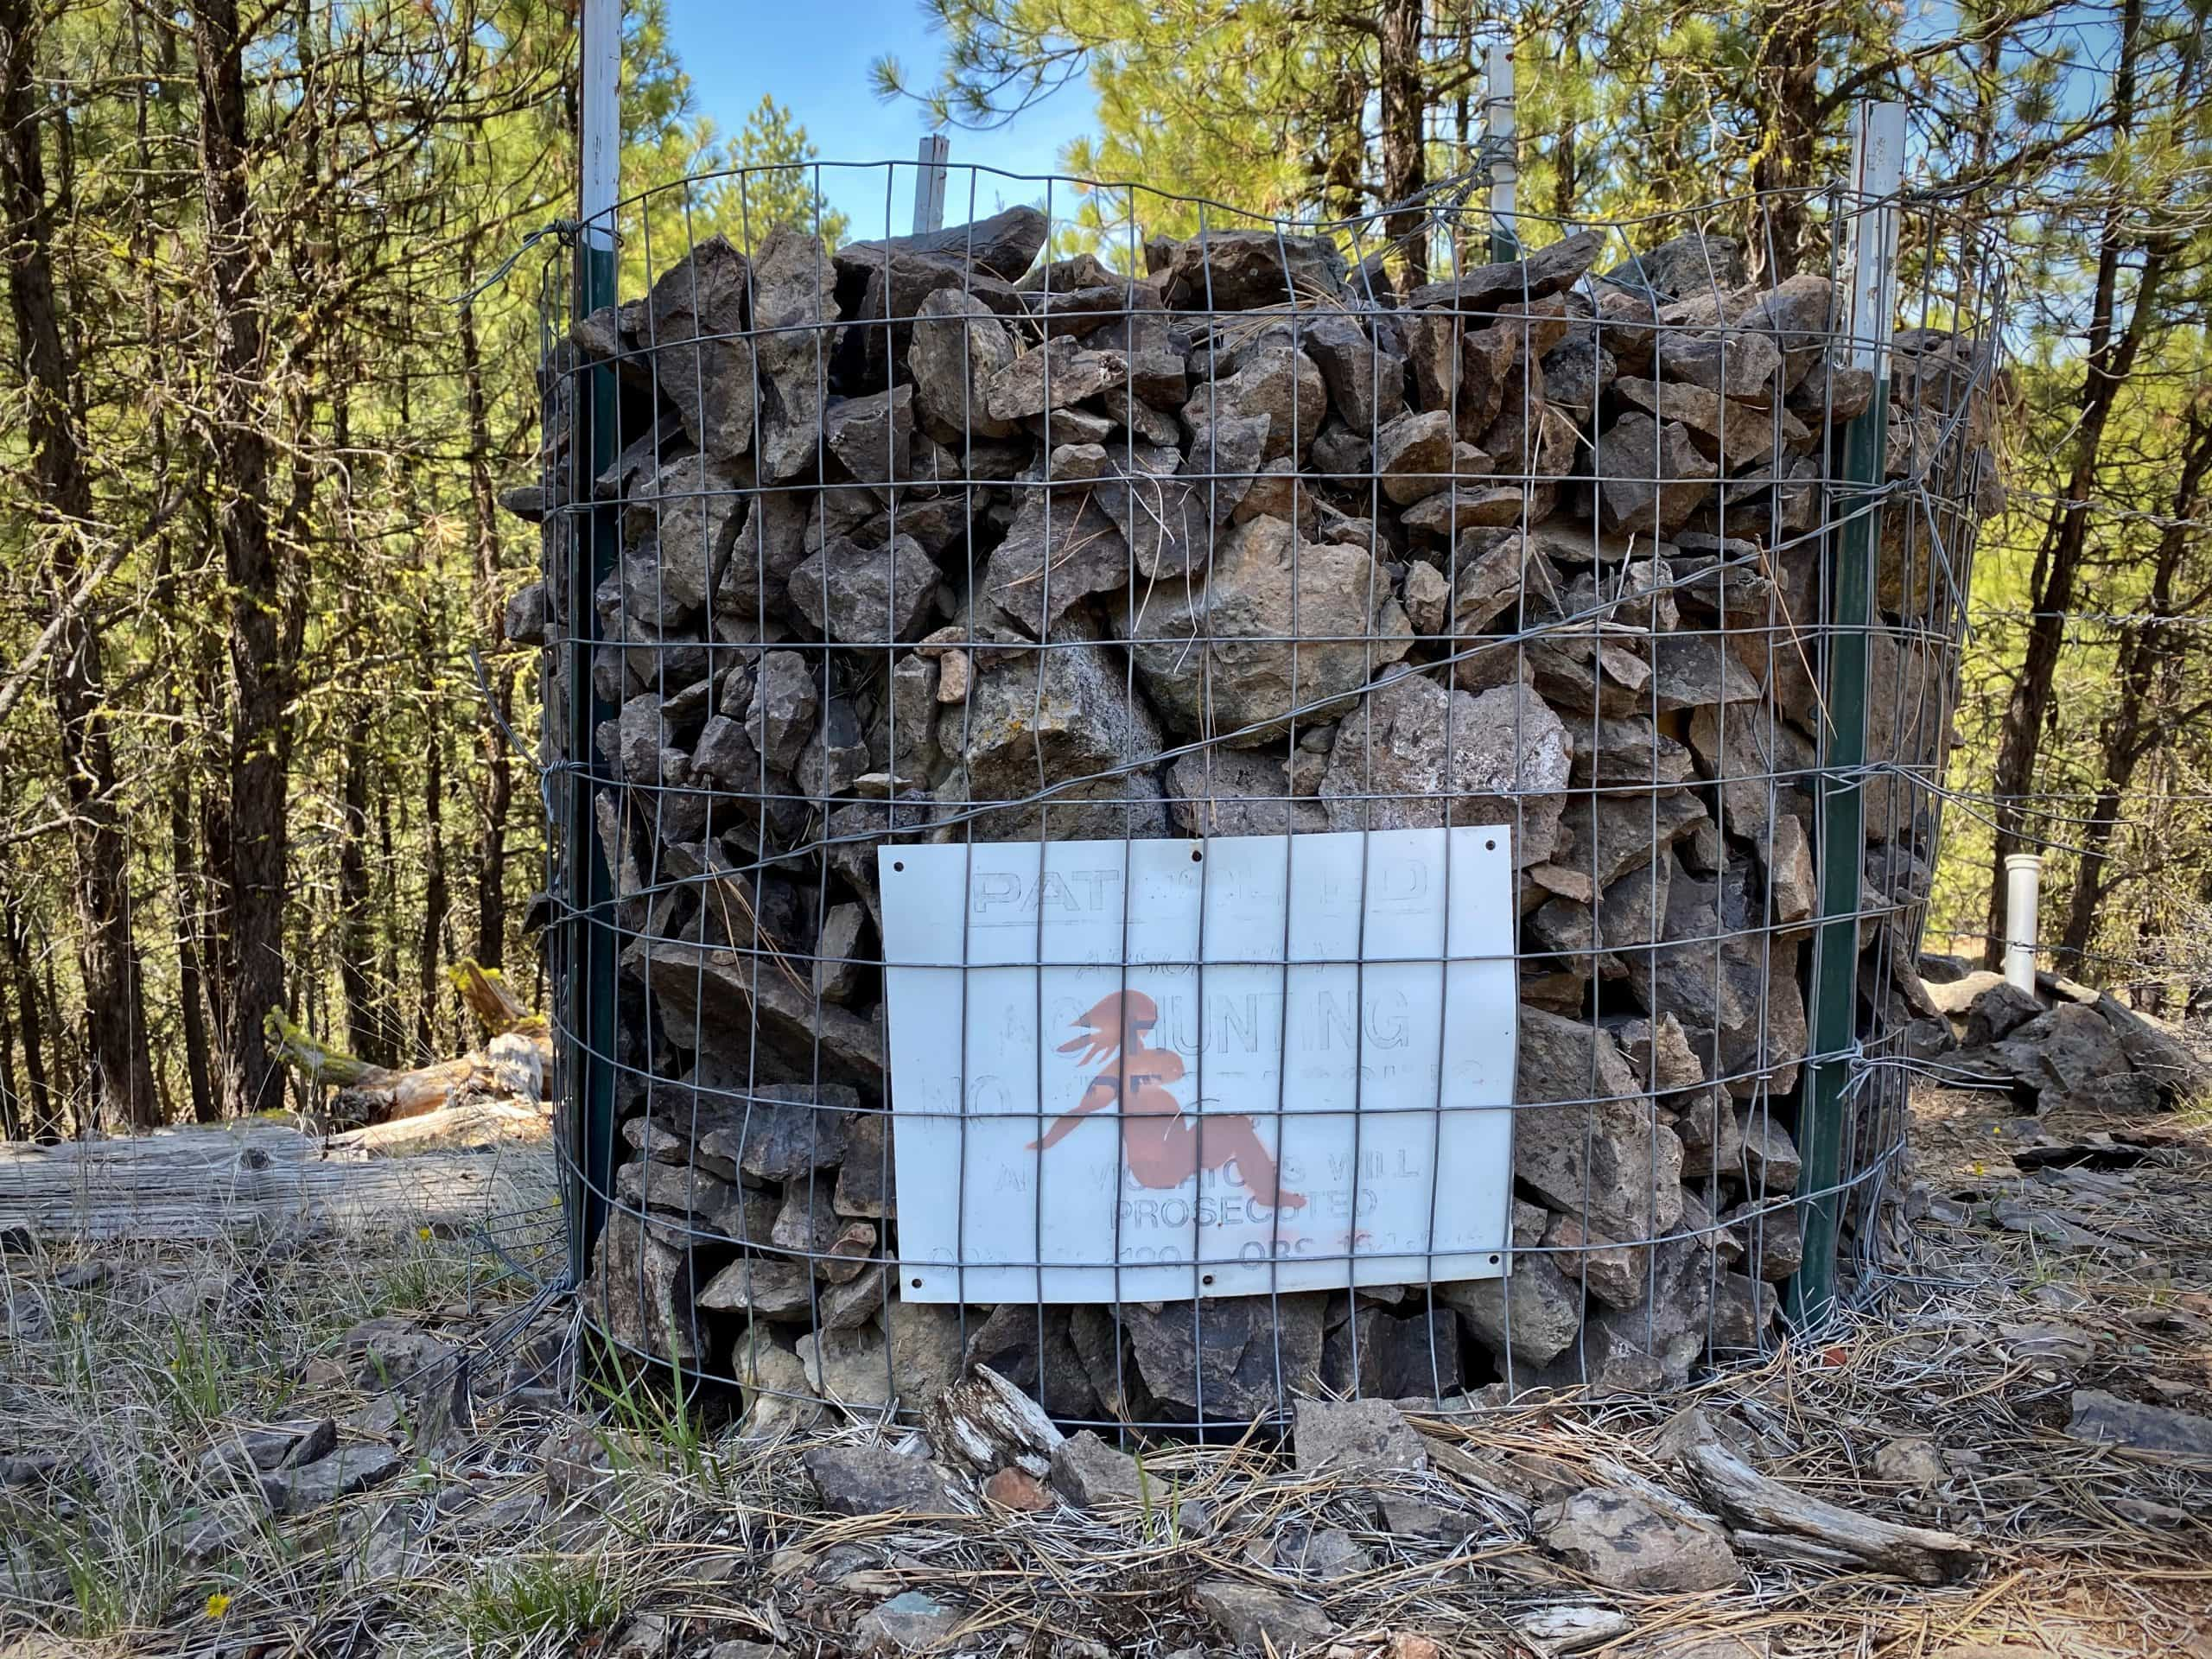 Sign with Pink Lady painted on it in the Ochoco National Forest.